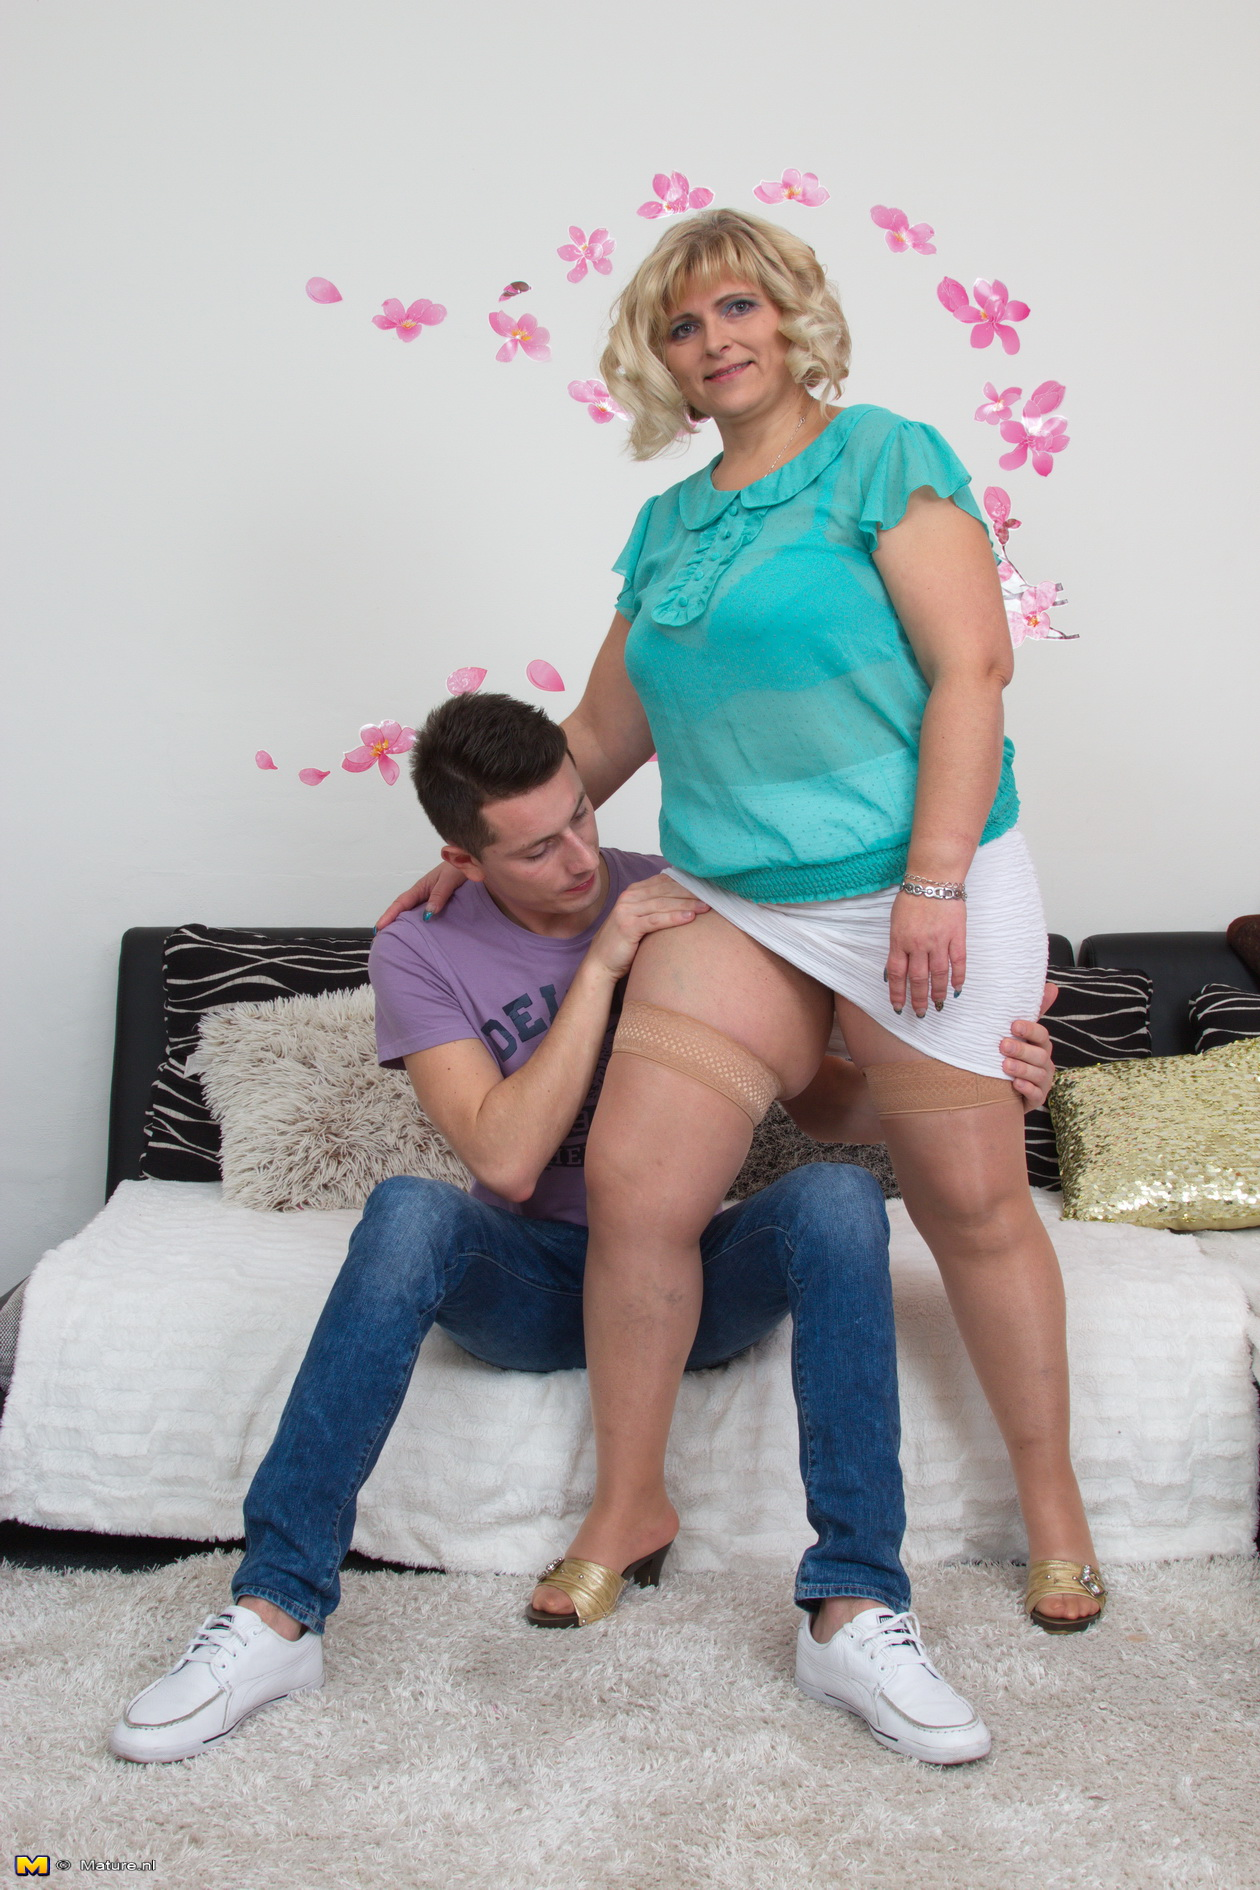 Boy in mature movie play woman